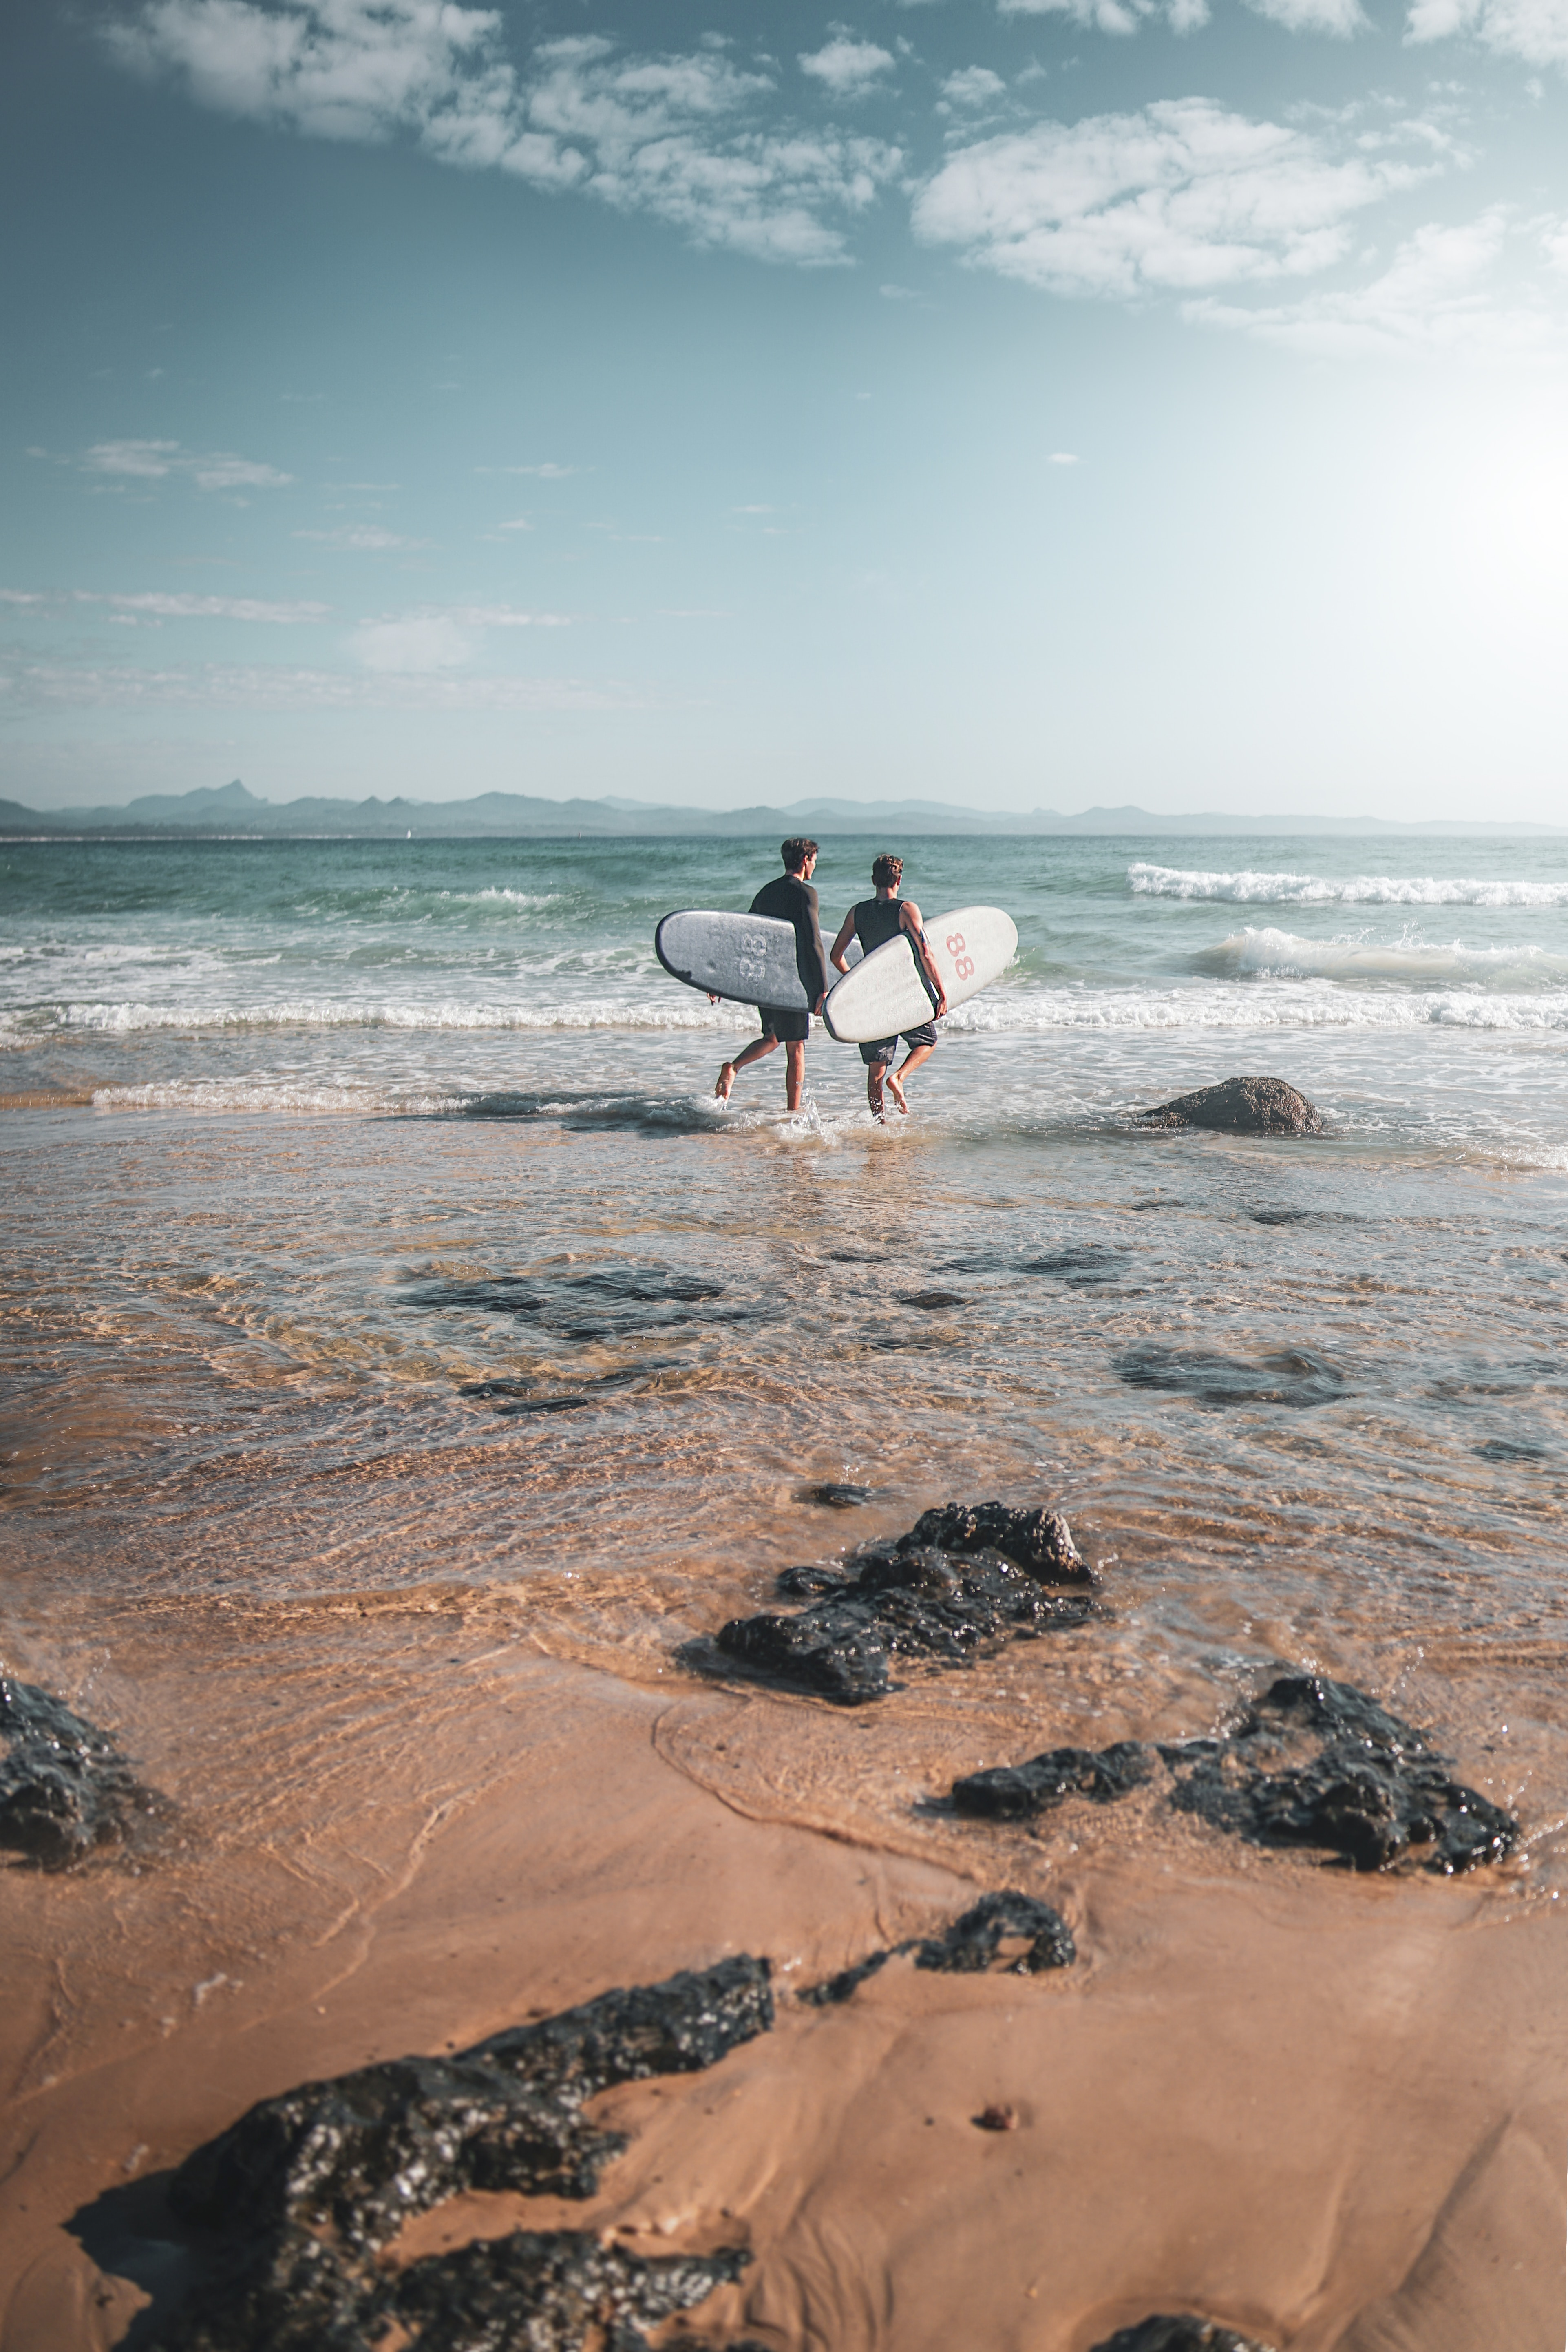 104339 download wallpaper Sports, Surfers, Serfing, Ocean, Beach, Waves screensavers and pictures for free